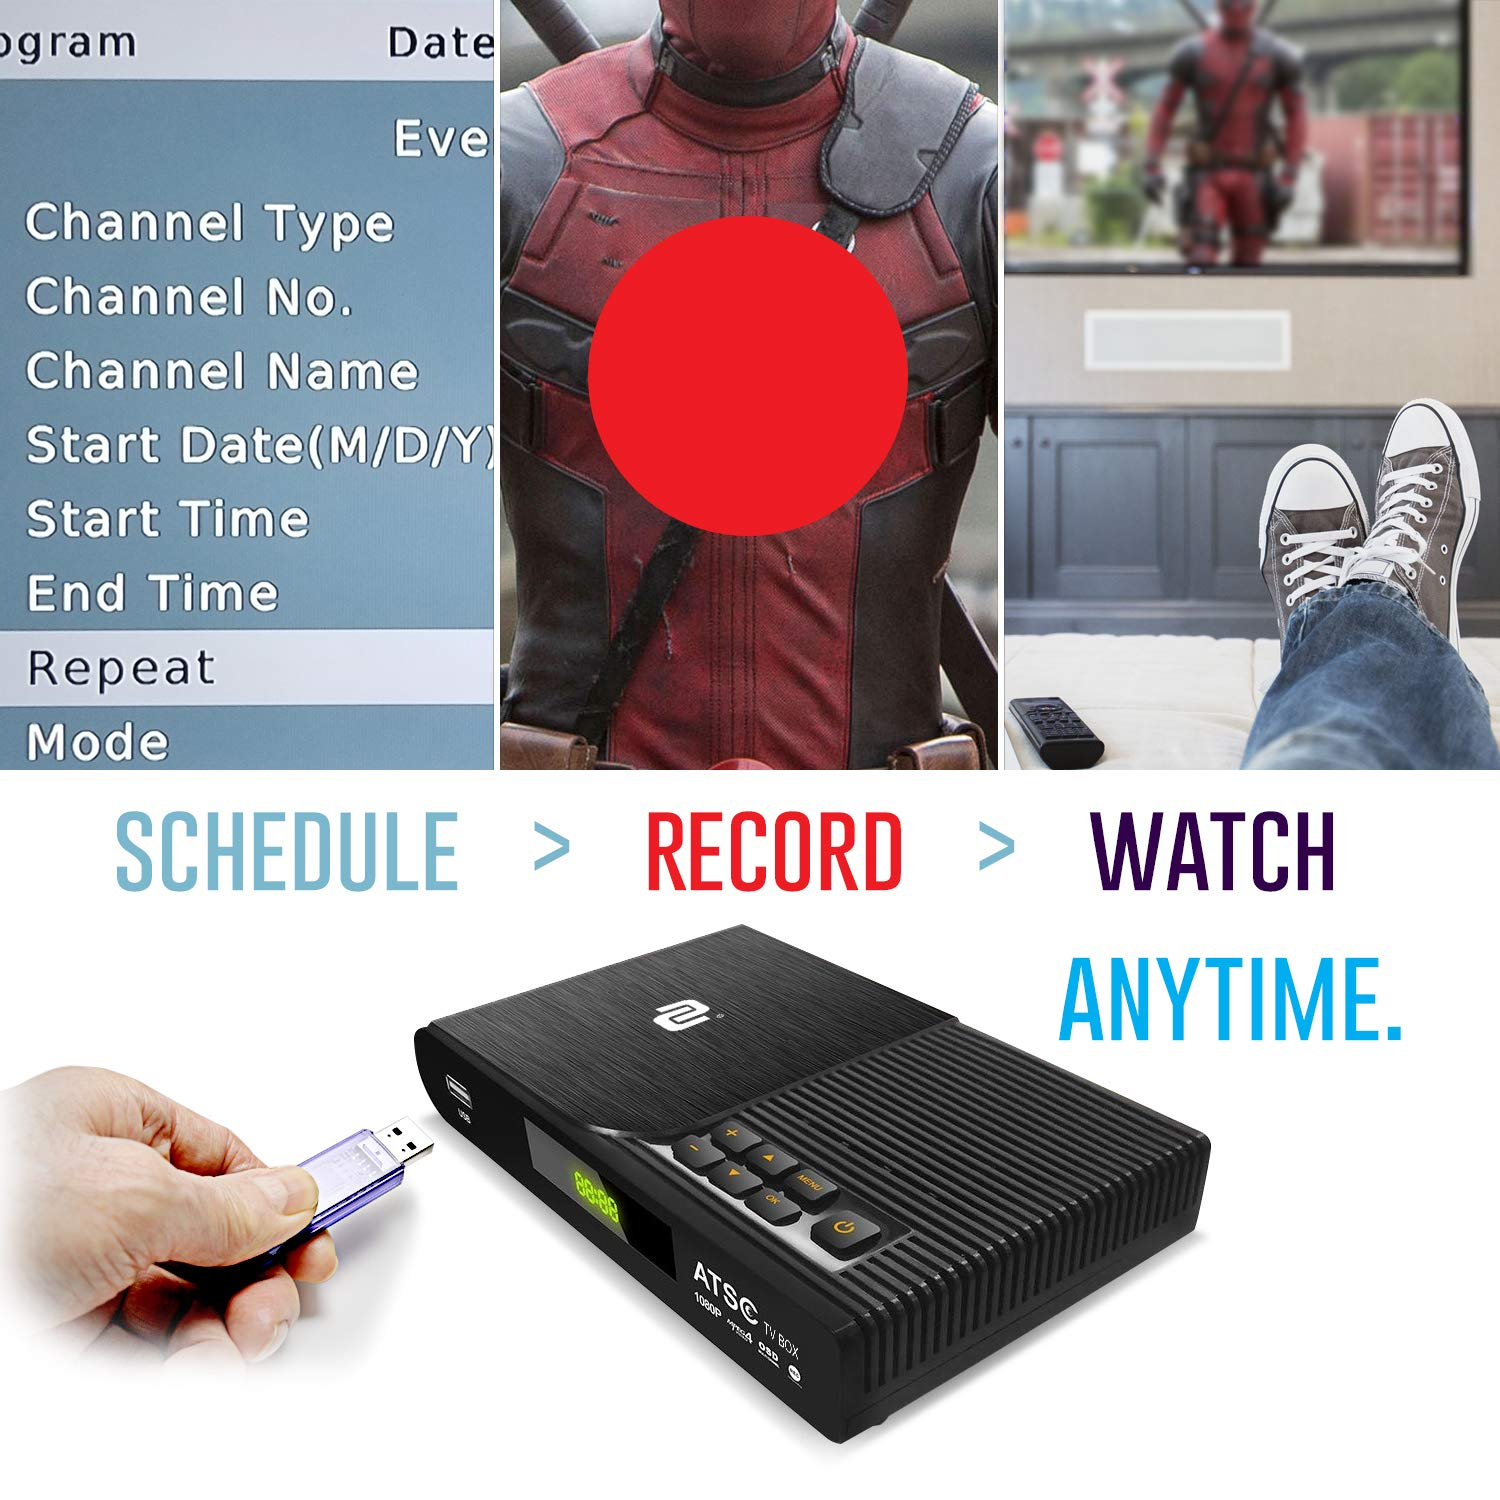 2020 Version TV Converter Box Digital to Digital ATSC Streaming Media Players Top Box PVR Recorder w TV Control Buttons 35 Miles Over The Air HD Antenna /& Amplifier Upgraded Remote w